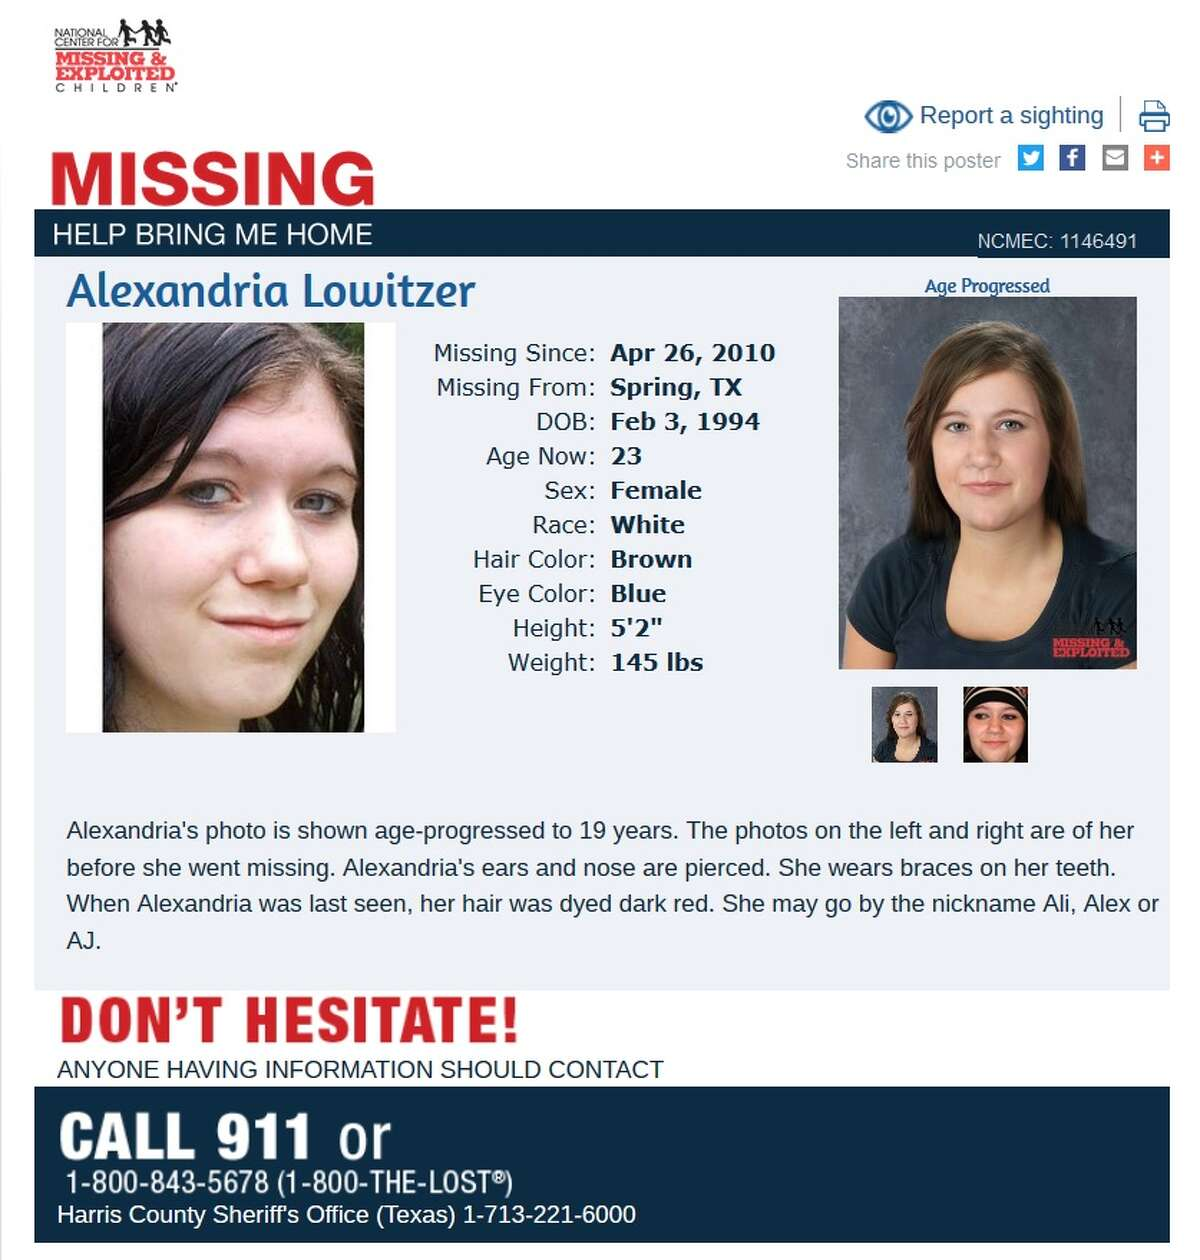 """Alexandria """"Ali"""" Lowitzer was 16 in 2010 when she vanishing after leaving a school bus at the usual stop in her Spring, Texas neighborhood. She would be 23 now. Jo Ann Lowitzer continues to work toward answers about her daughter's whereabouts and attended Missing in Harris County Day on June 10, 2017."""